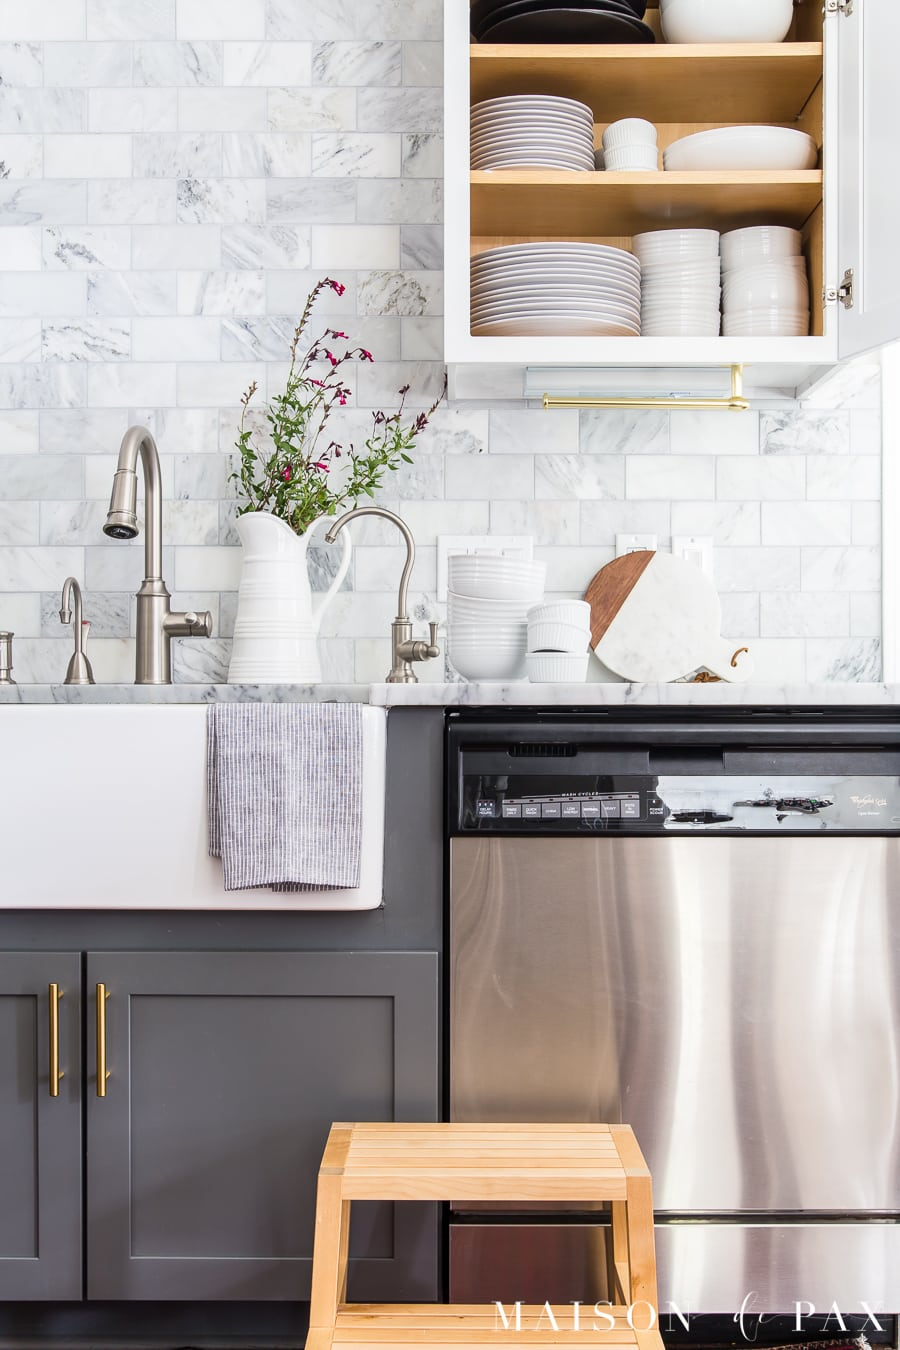 Kitchen Organization Principles For A Beautiful Functional Kitchen